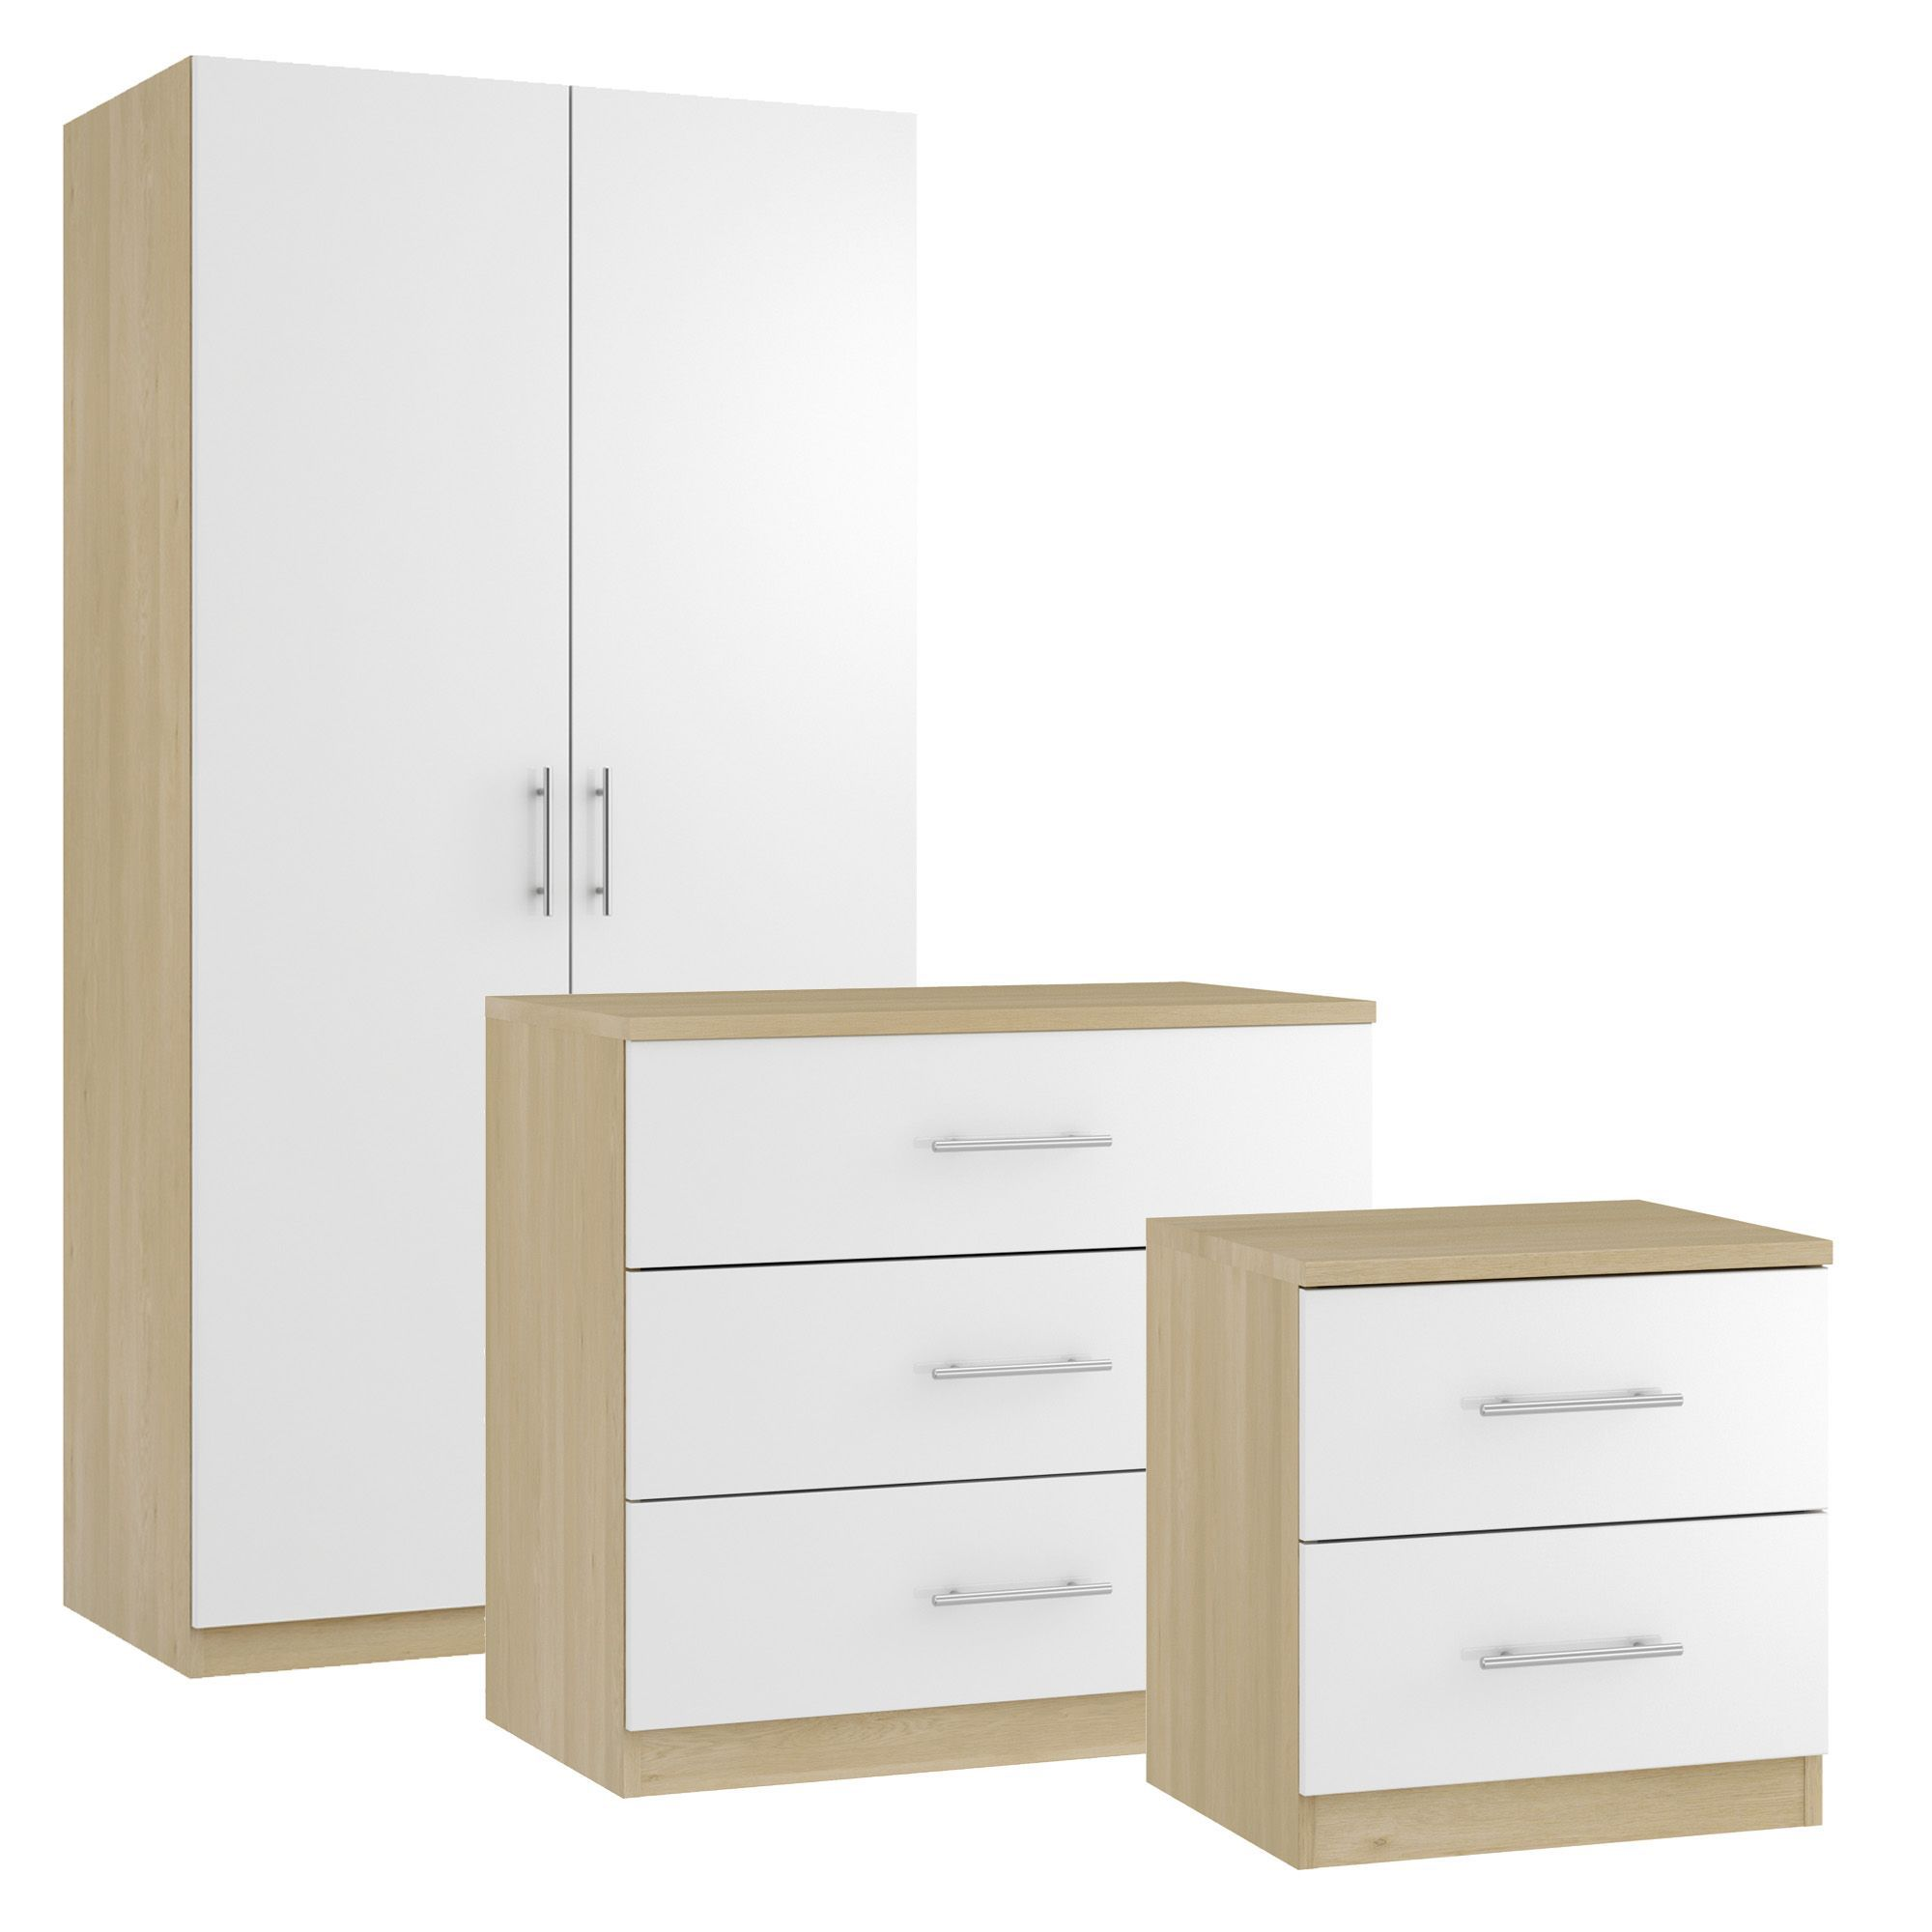 Darwin oak effect white 3 piece bedroom furniture set for B q bedroom furniture sets